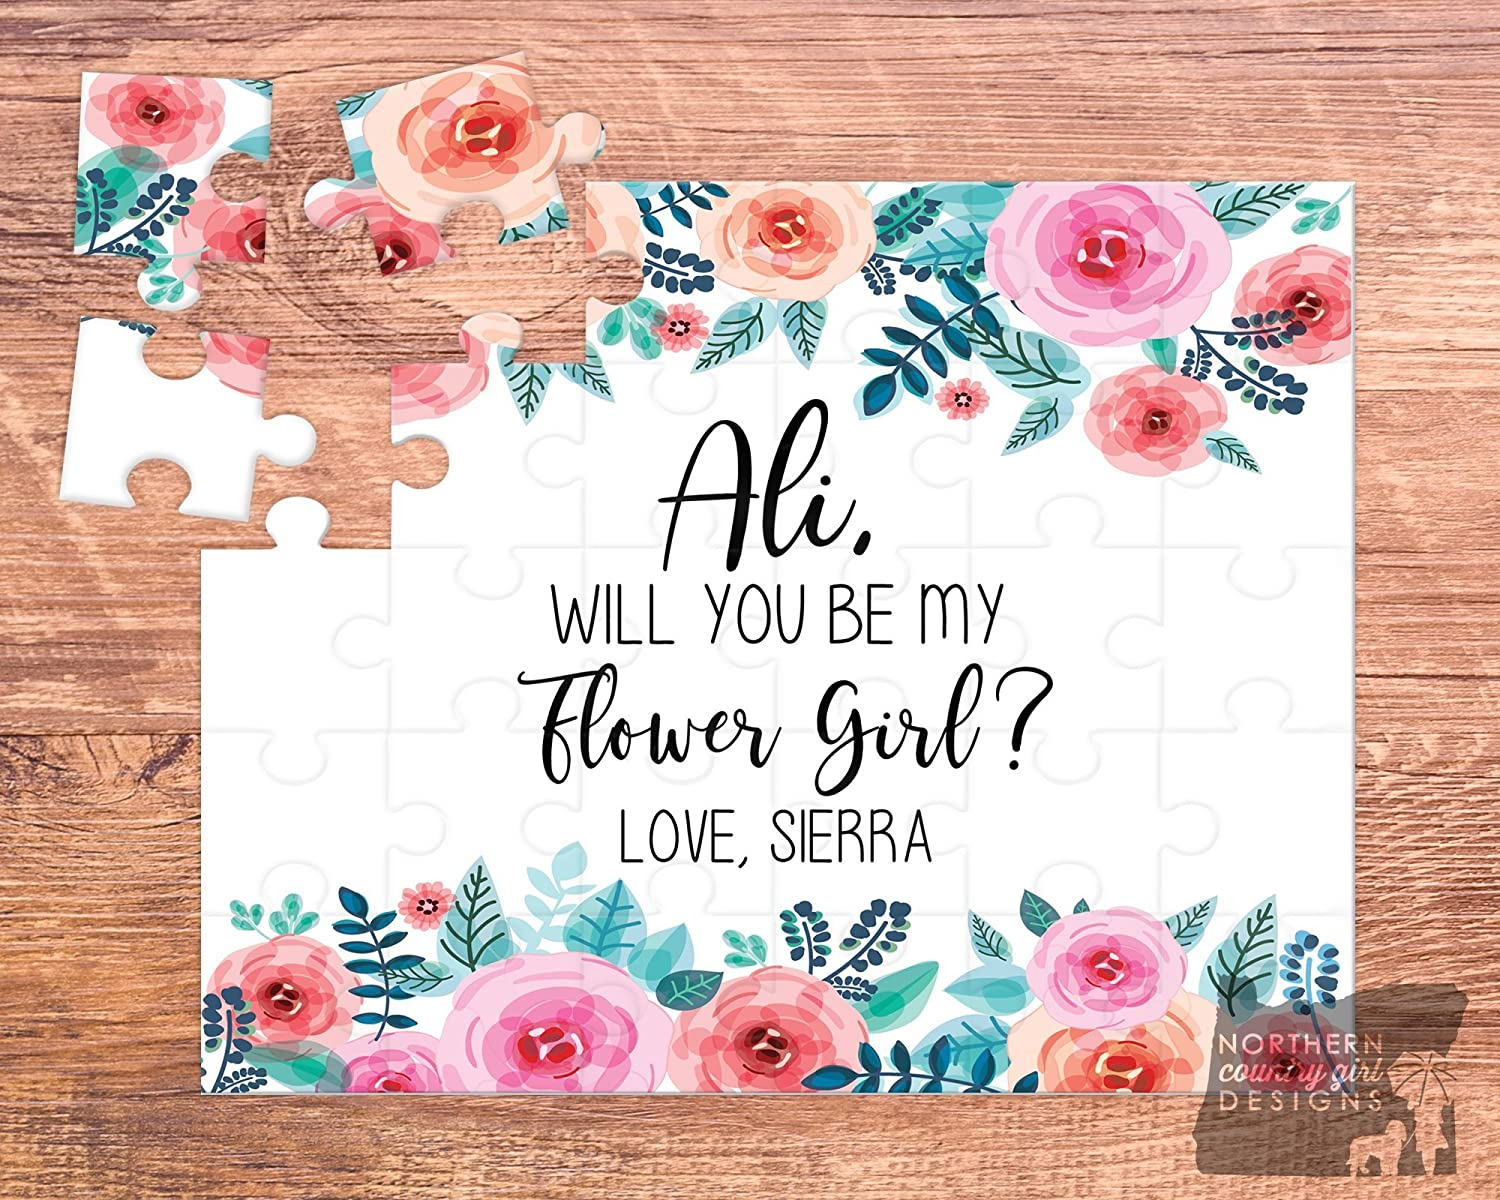 Personalised Will You Be Our Flower Girl Card Wedding Invitation Custom Card for Flower Girl with Name Flower Girl Proposal Wedding Card